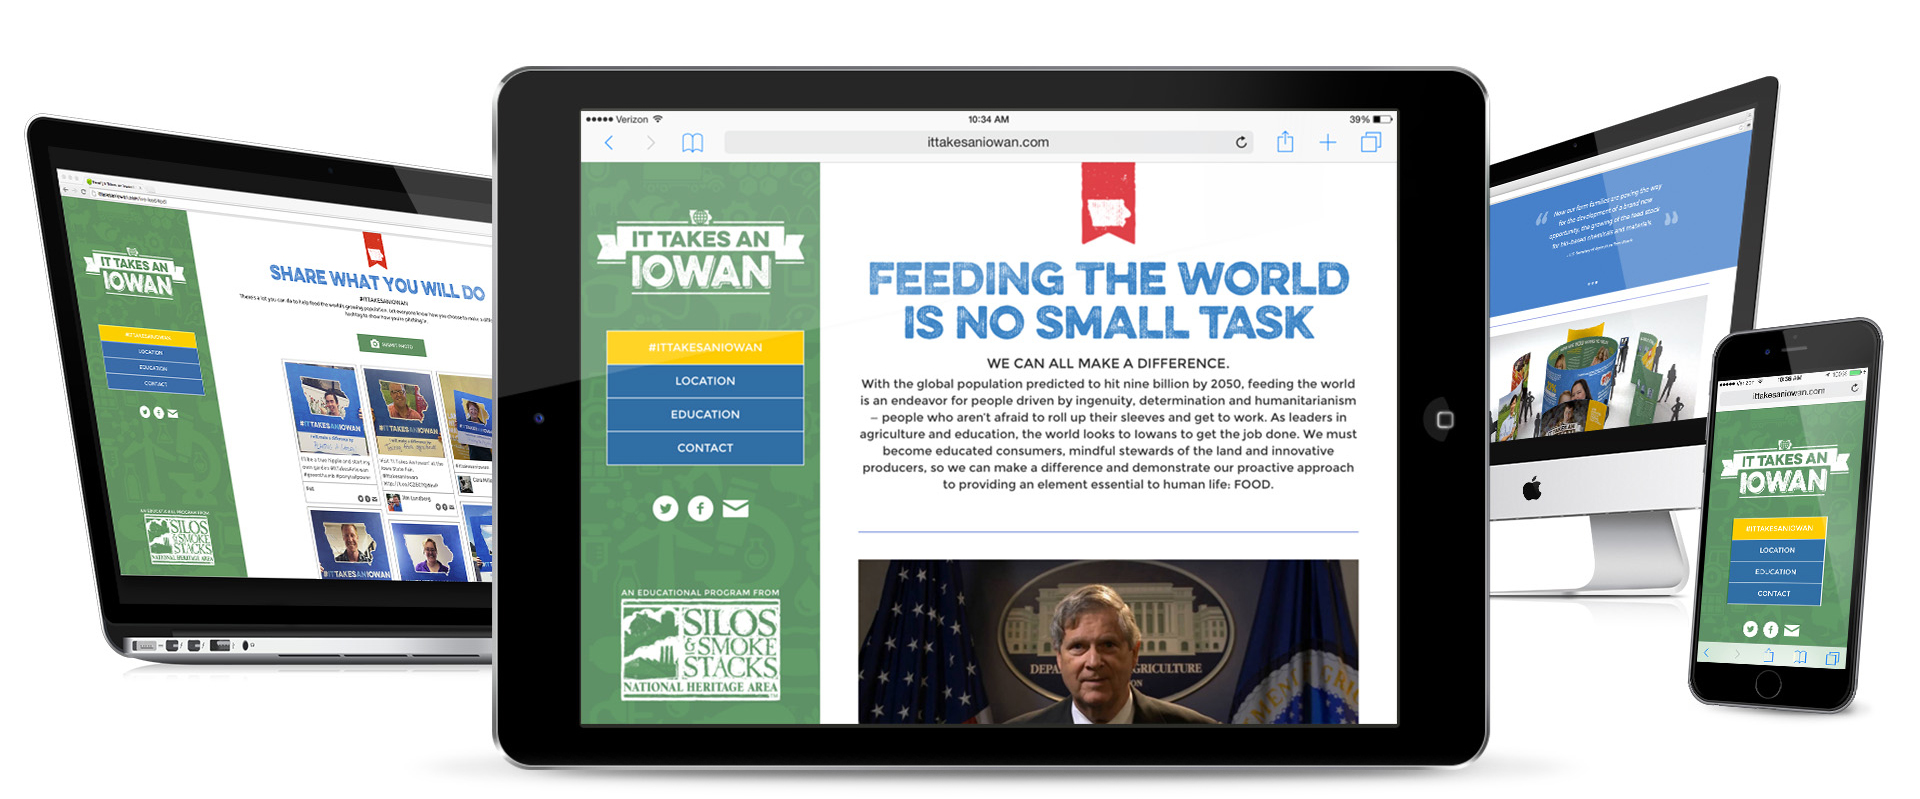 It Takes an Iowan Microsite Mockup on Computer, Tablet and Phone